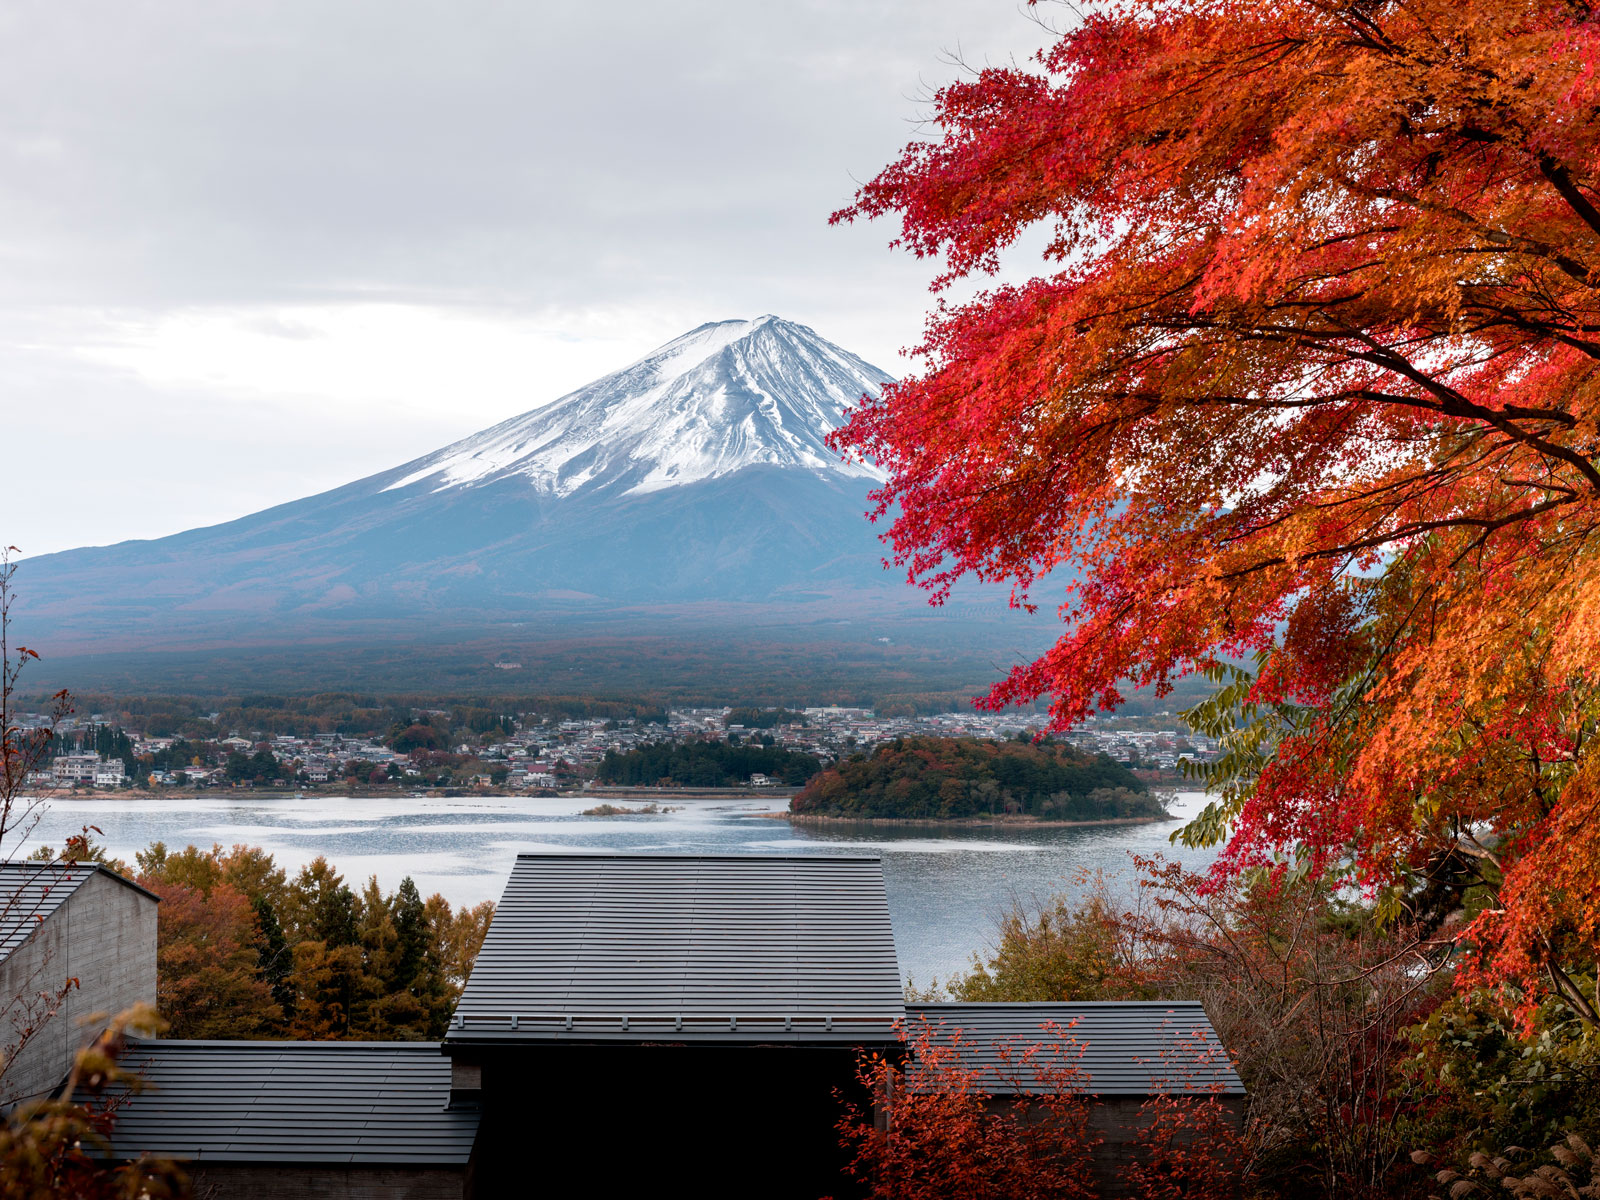 Enjoy In-Room Hot Pot While Glamping at Mount Fuji